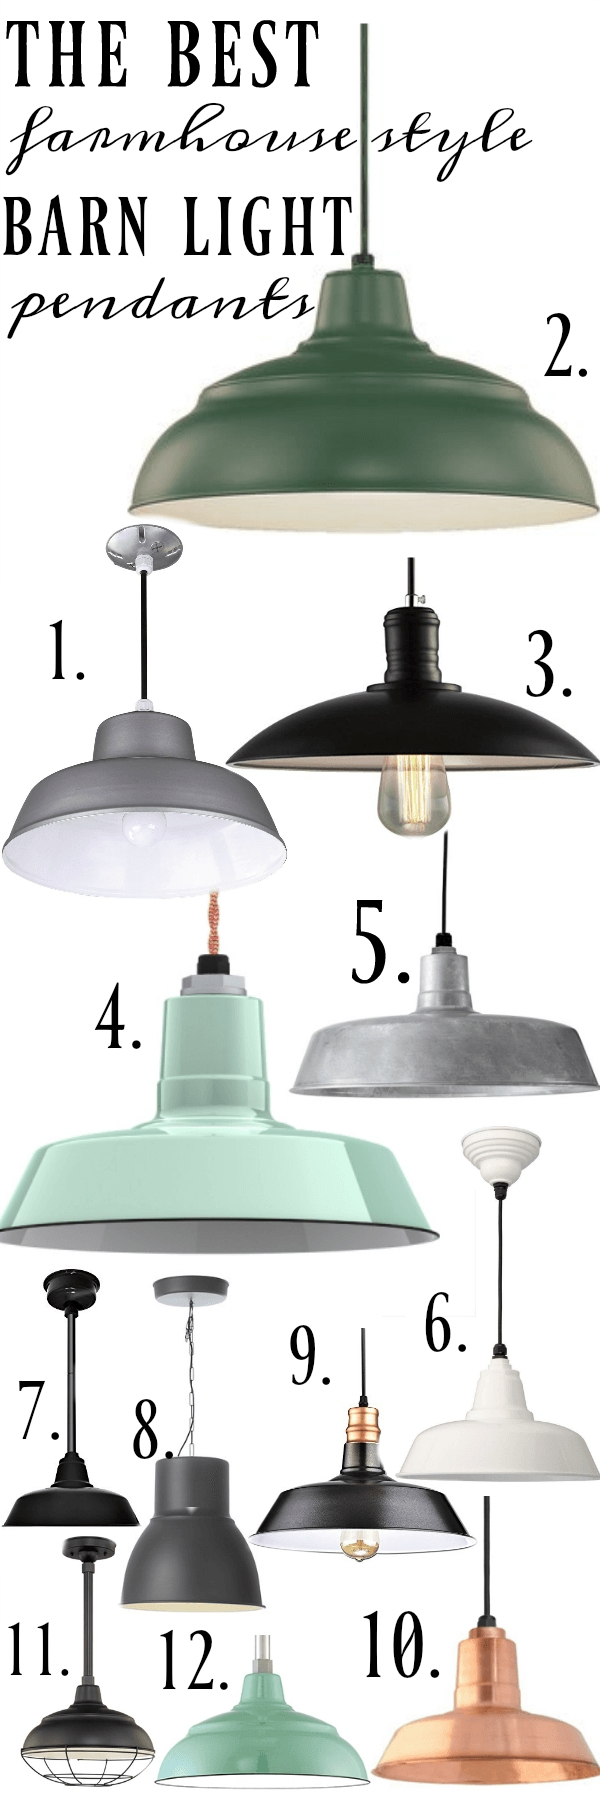 Farmhouse Barn Light Pendants | Farmhouse Style, Cottage Style And Regarding Outdoor Hanging Barn Lights (View 9 of 15)